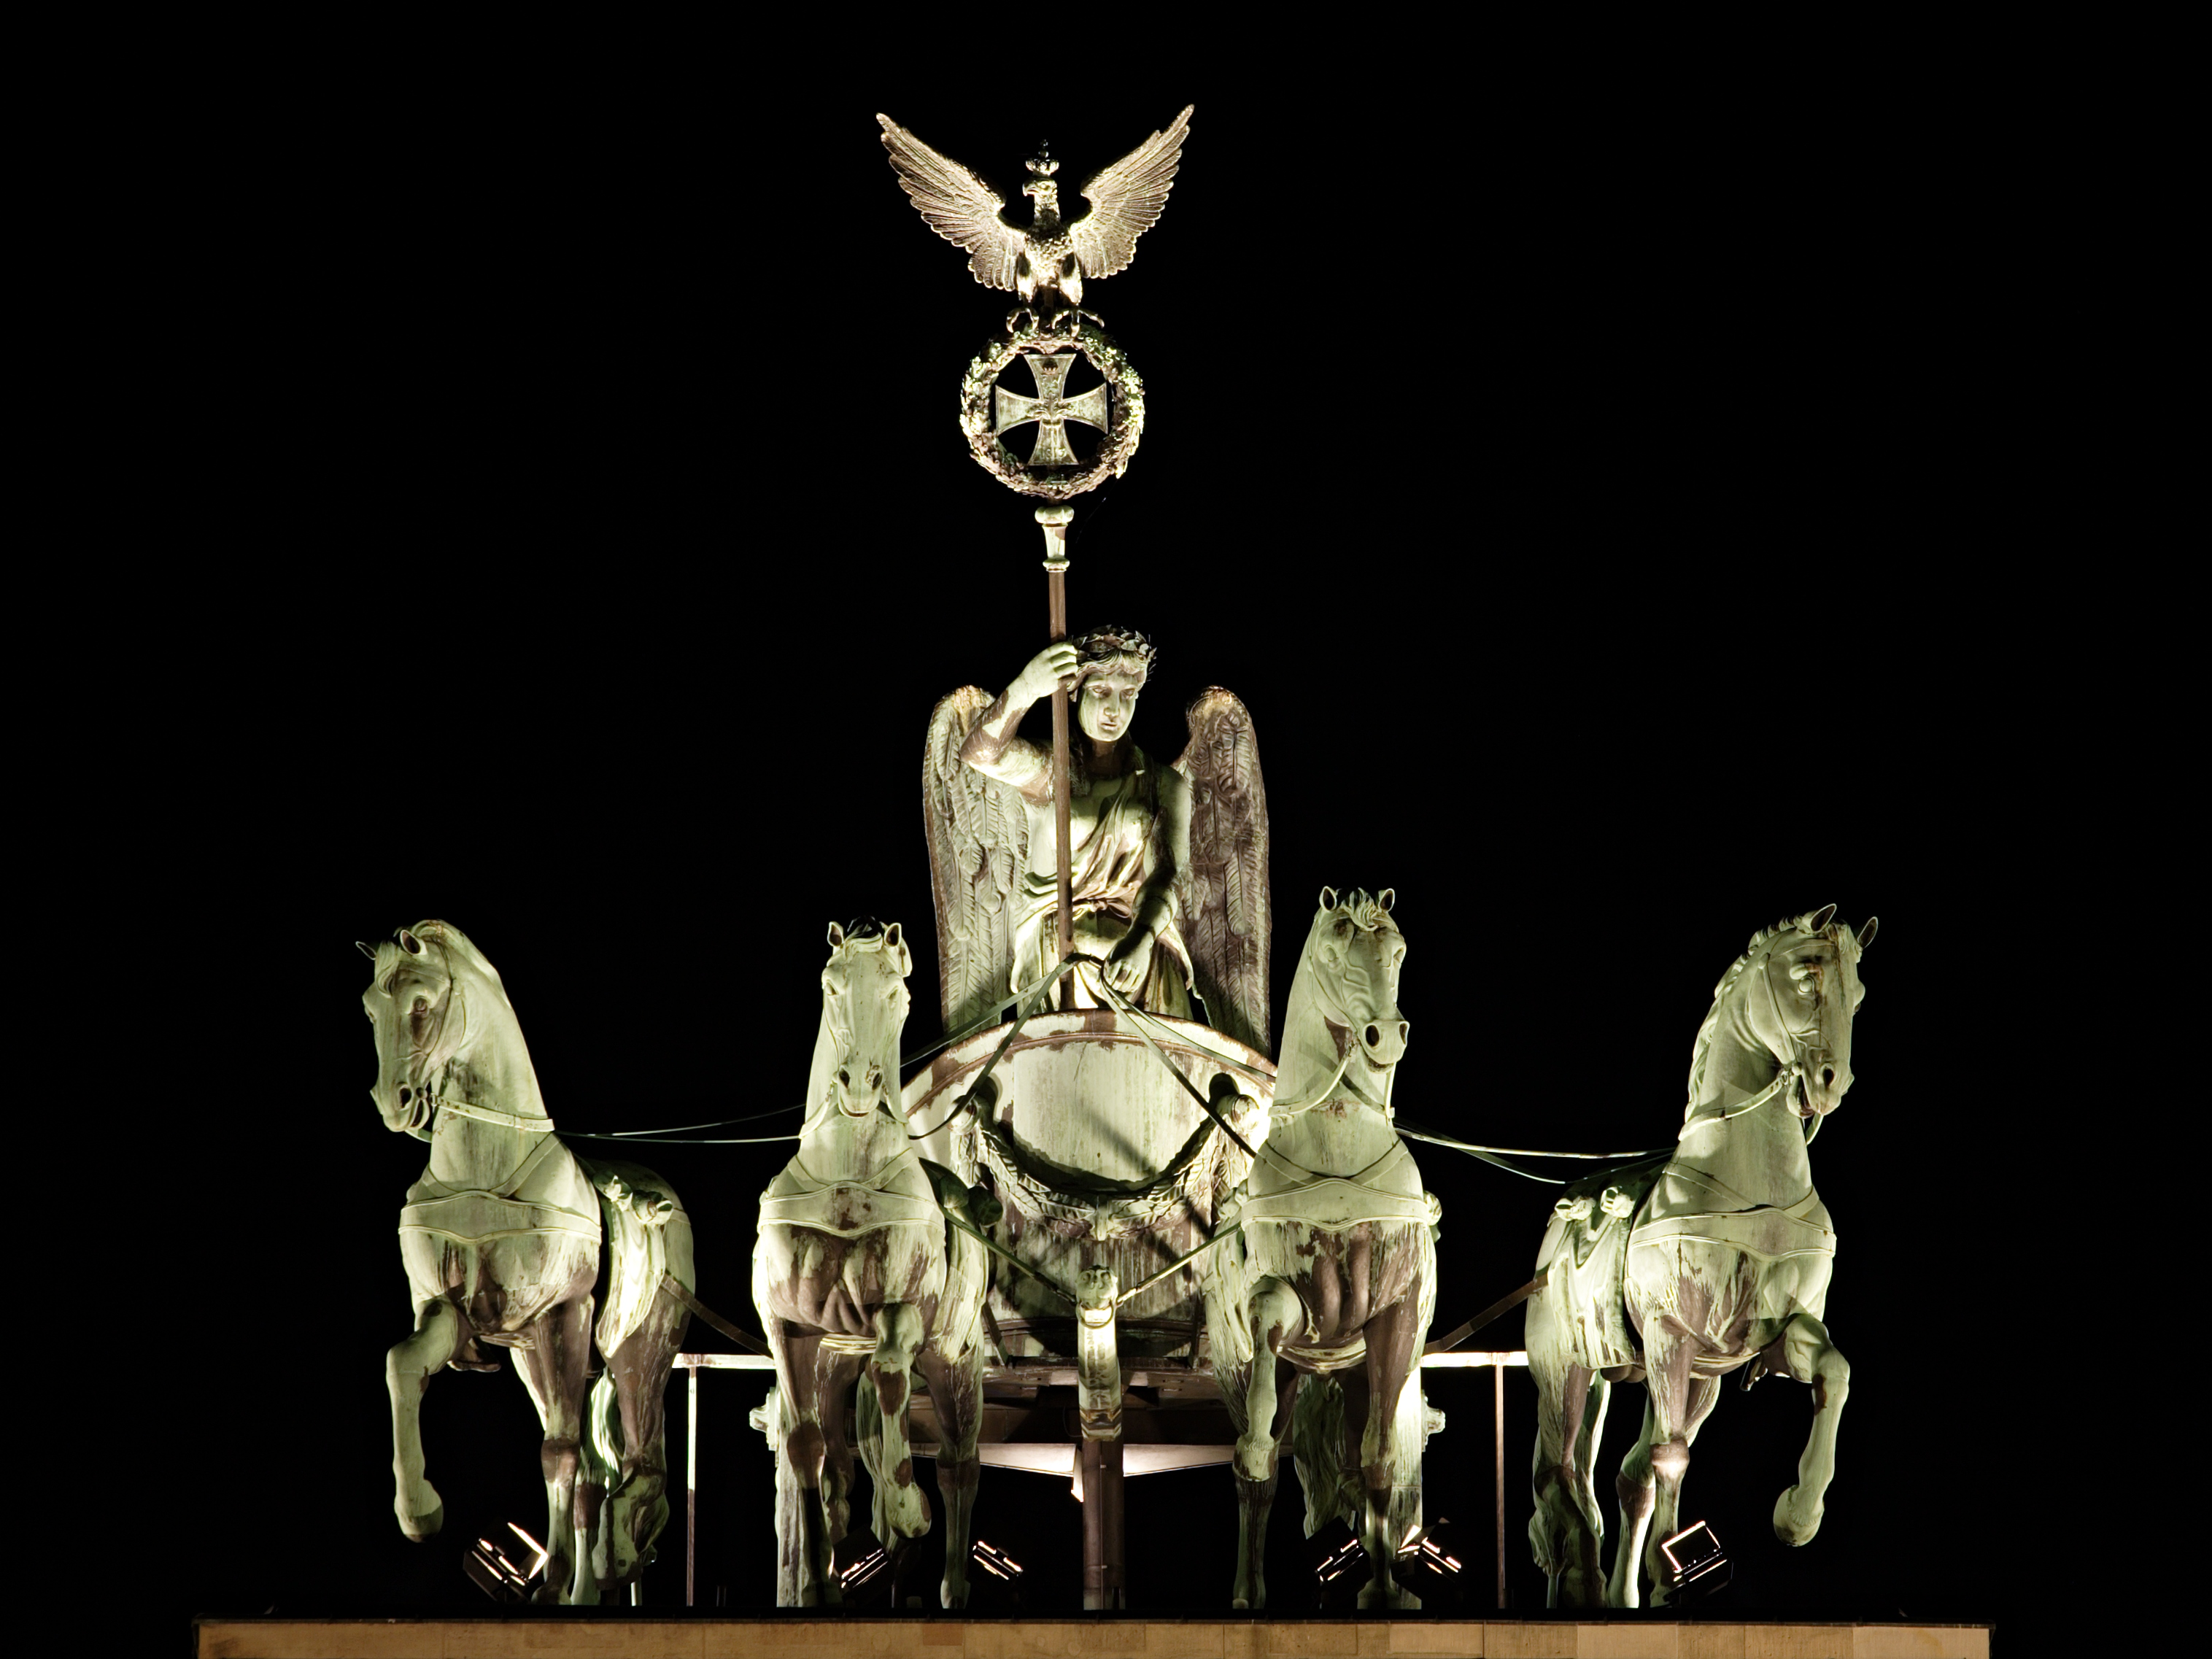 File:Brandenburg Gate Quadriga at Night.jpg